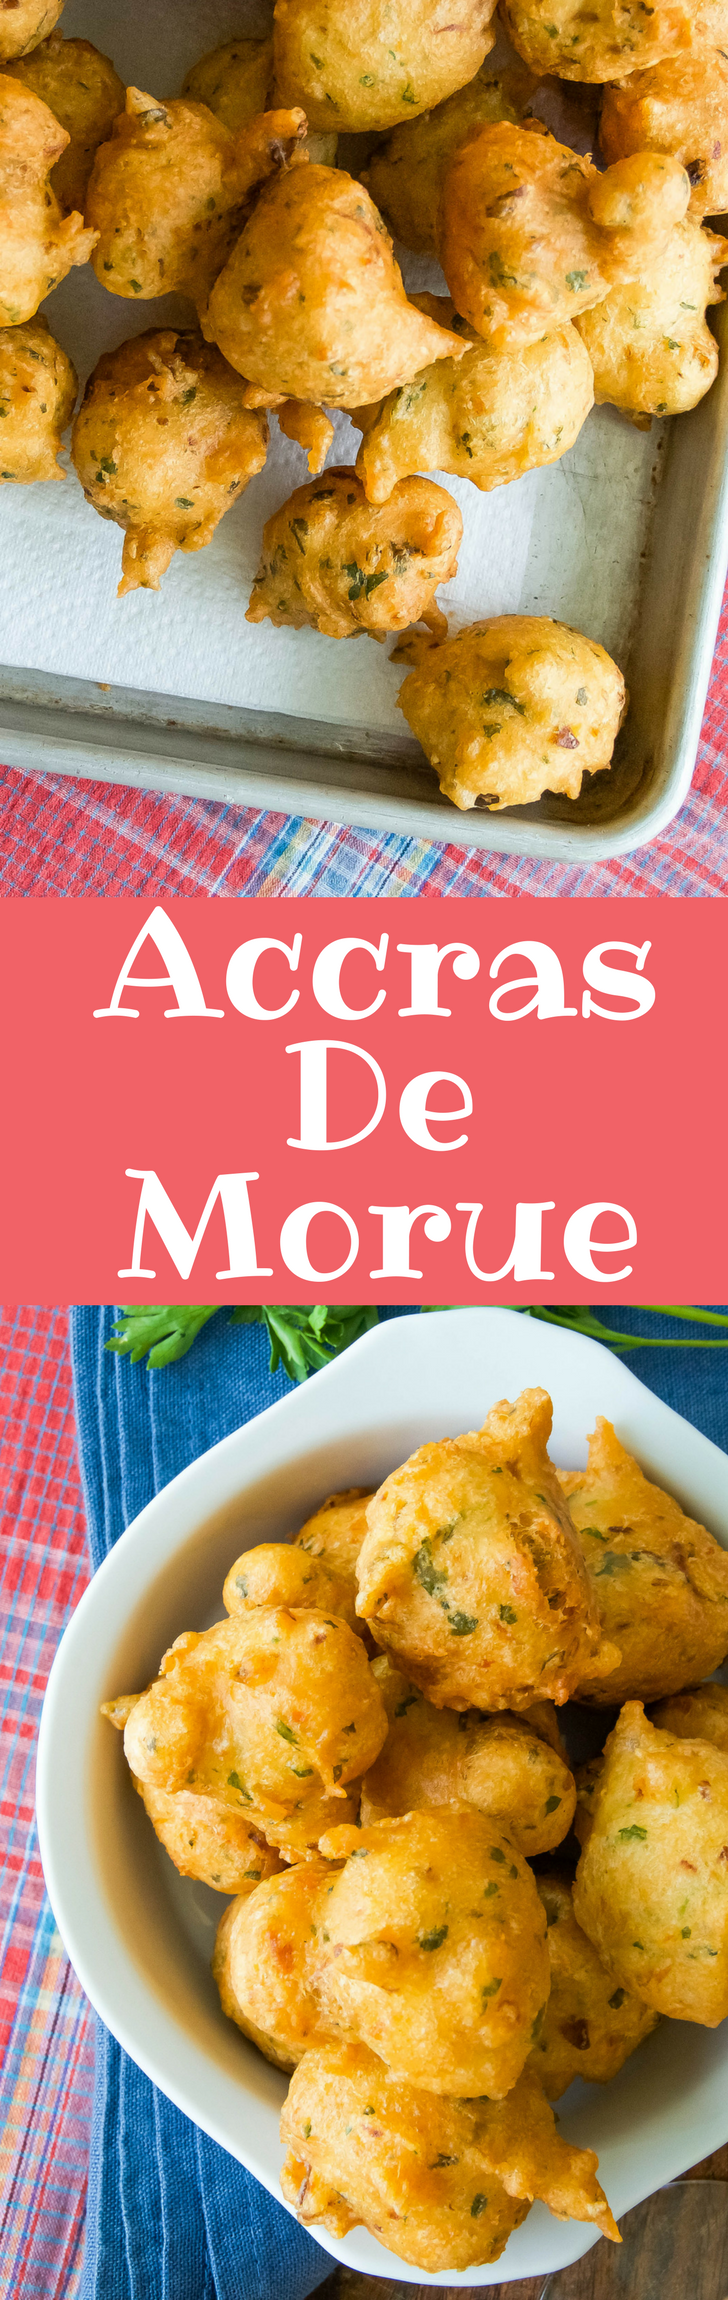 This authentic Carribbean Accras De Morue recipe is easy to make and is the best hors d'oeuvre or appetizer with cocktails.